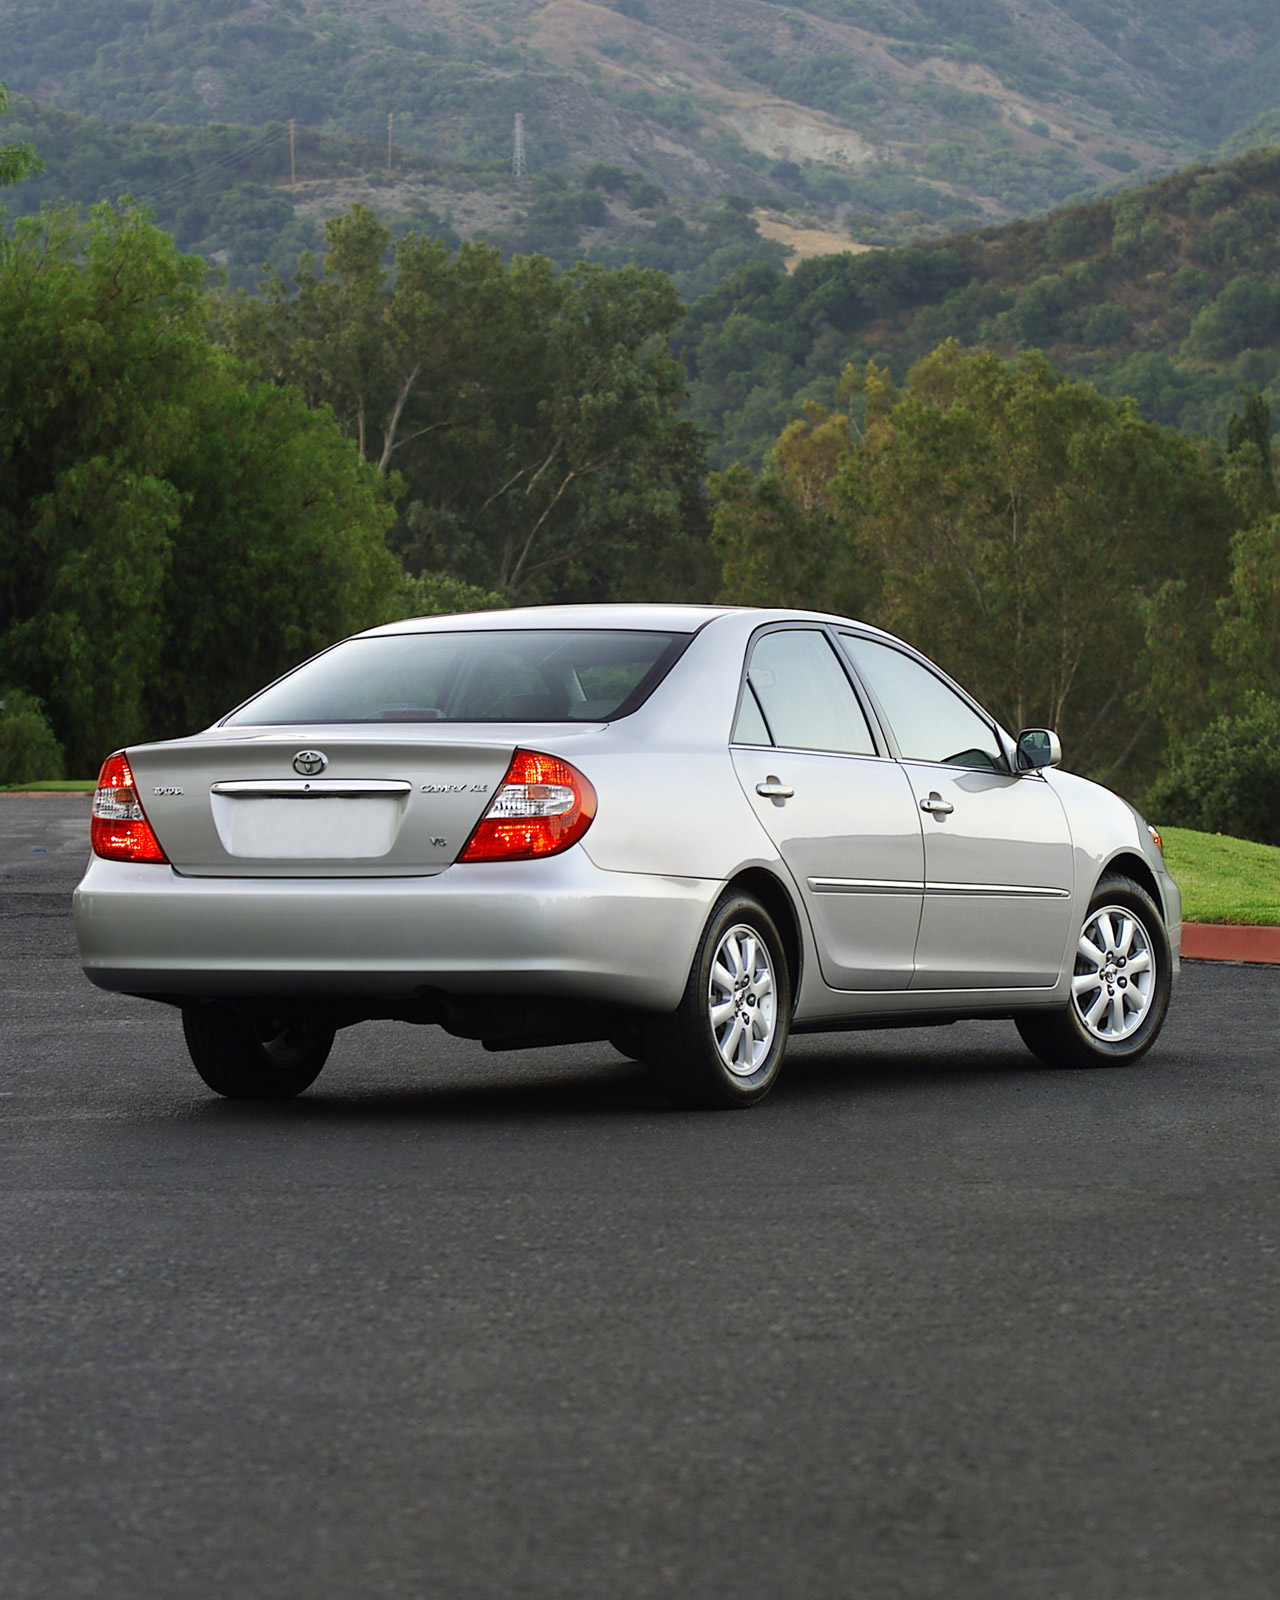 First Toyota Unintended Acceleration Case Headed For Trial